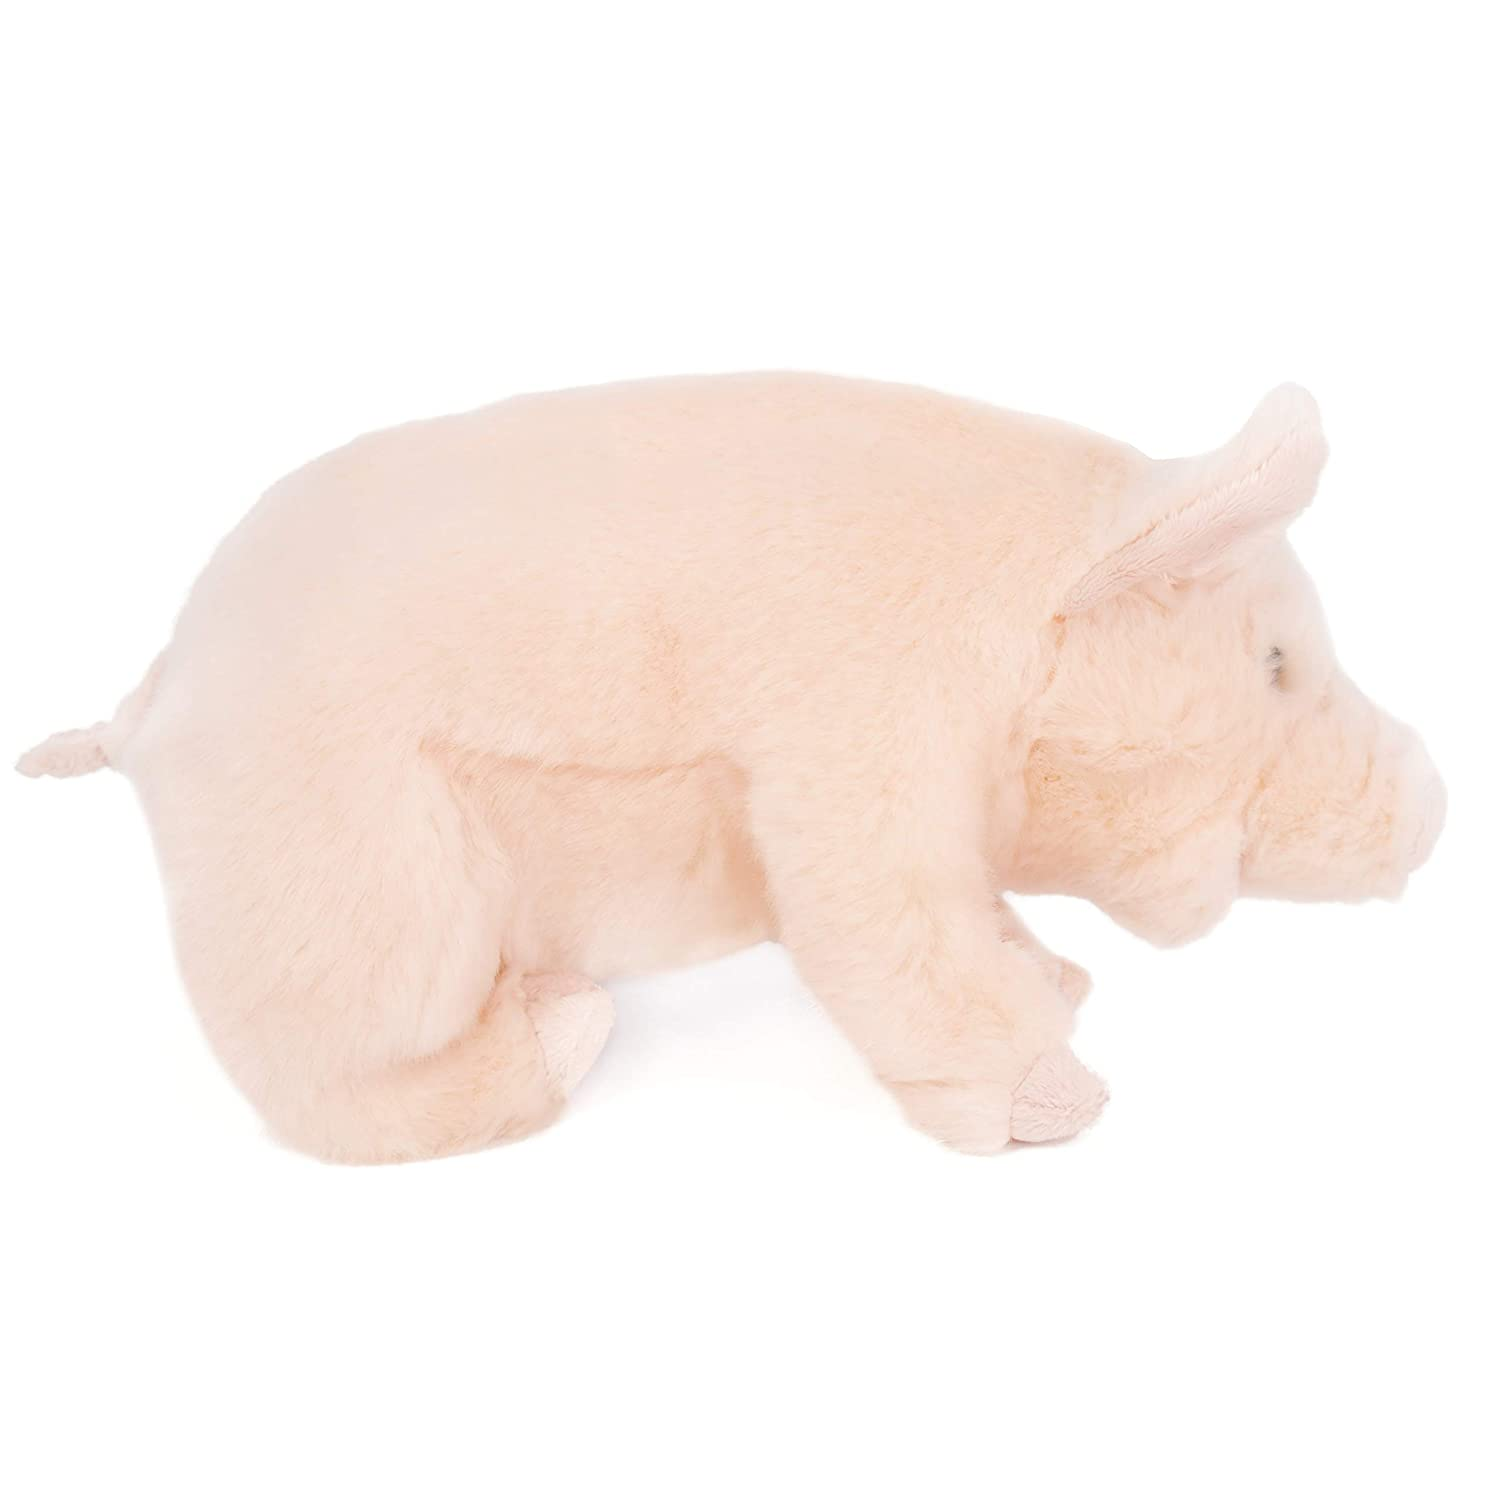 Amazon.com: Perla el Cerdo | Animal de peluche 11 inch ...